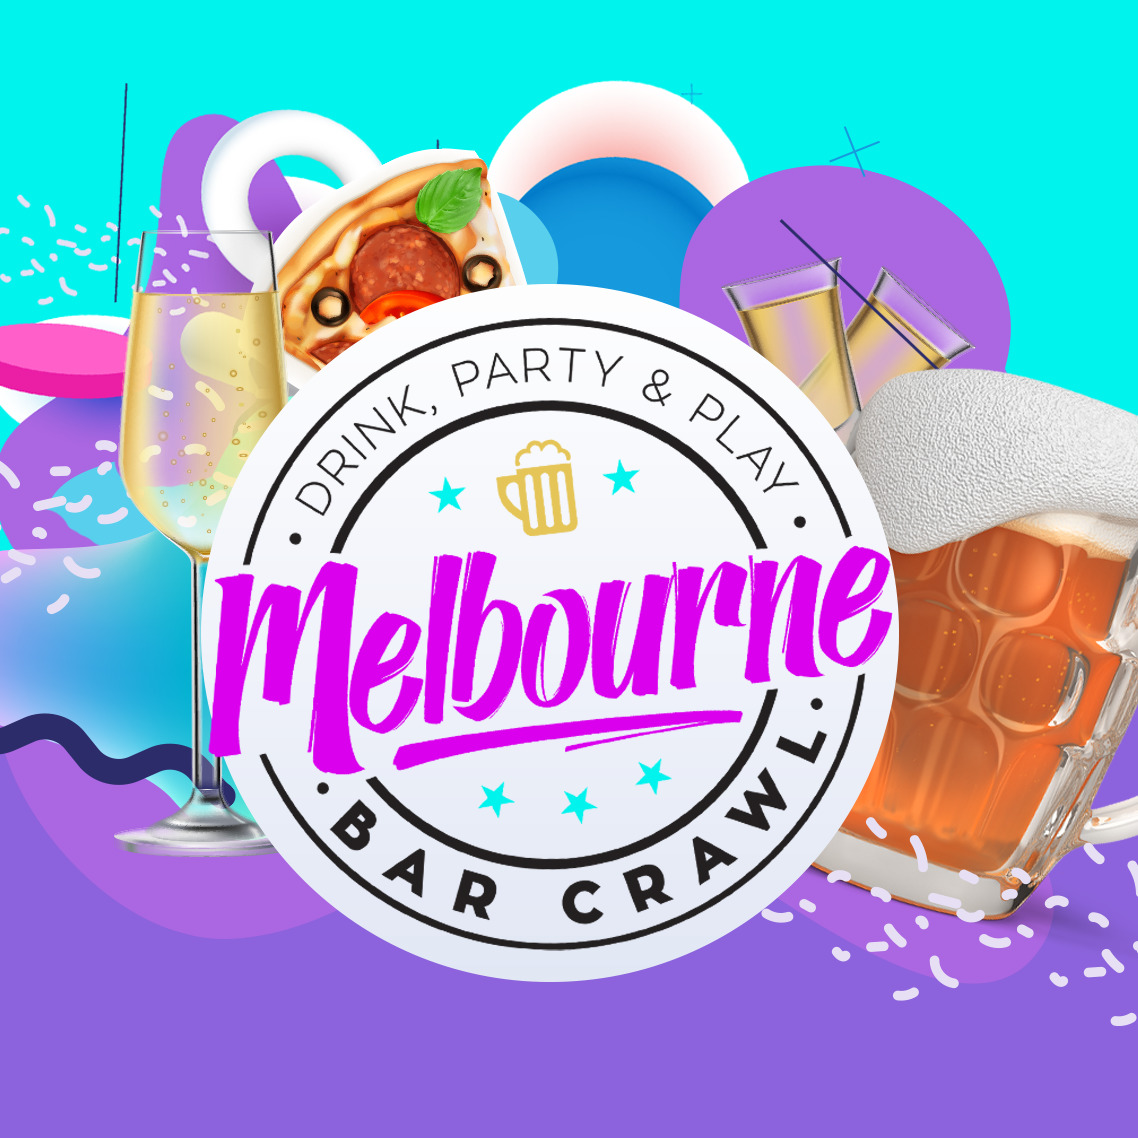 Australia Day Rooftop Beach Party 2018 - Melbourne